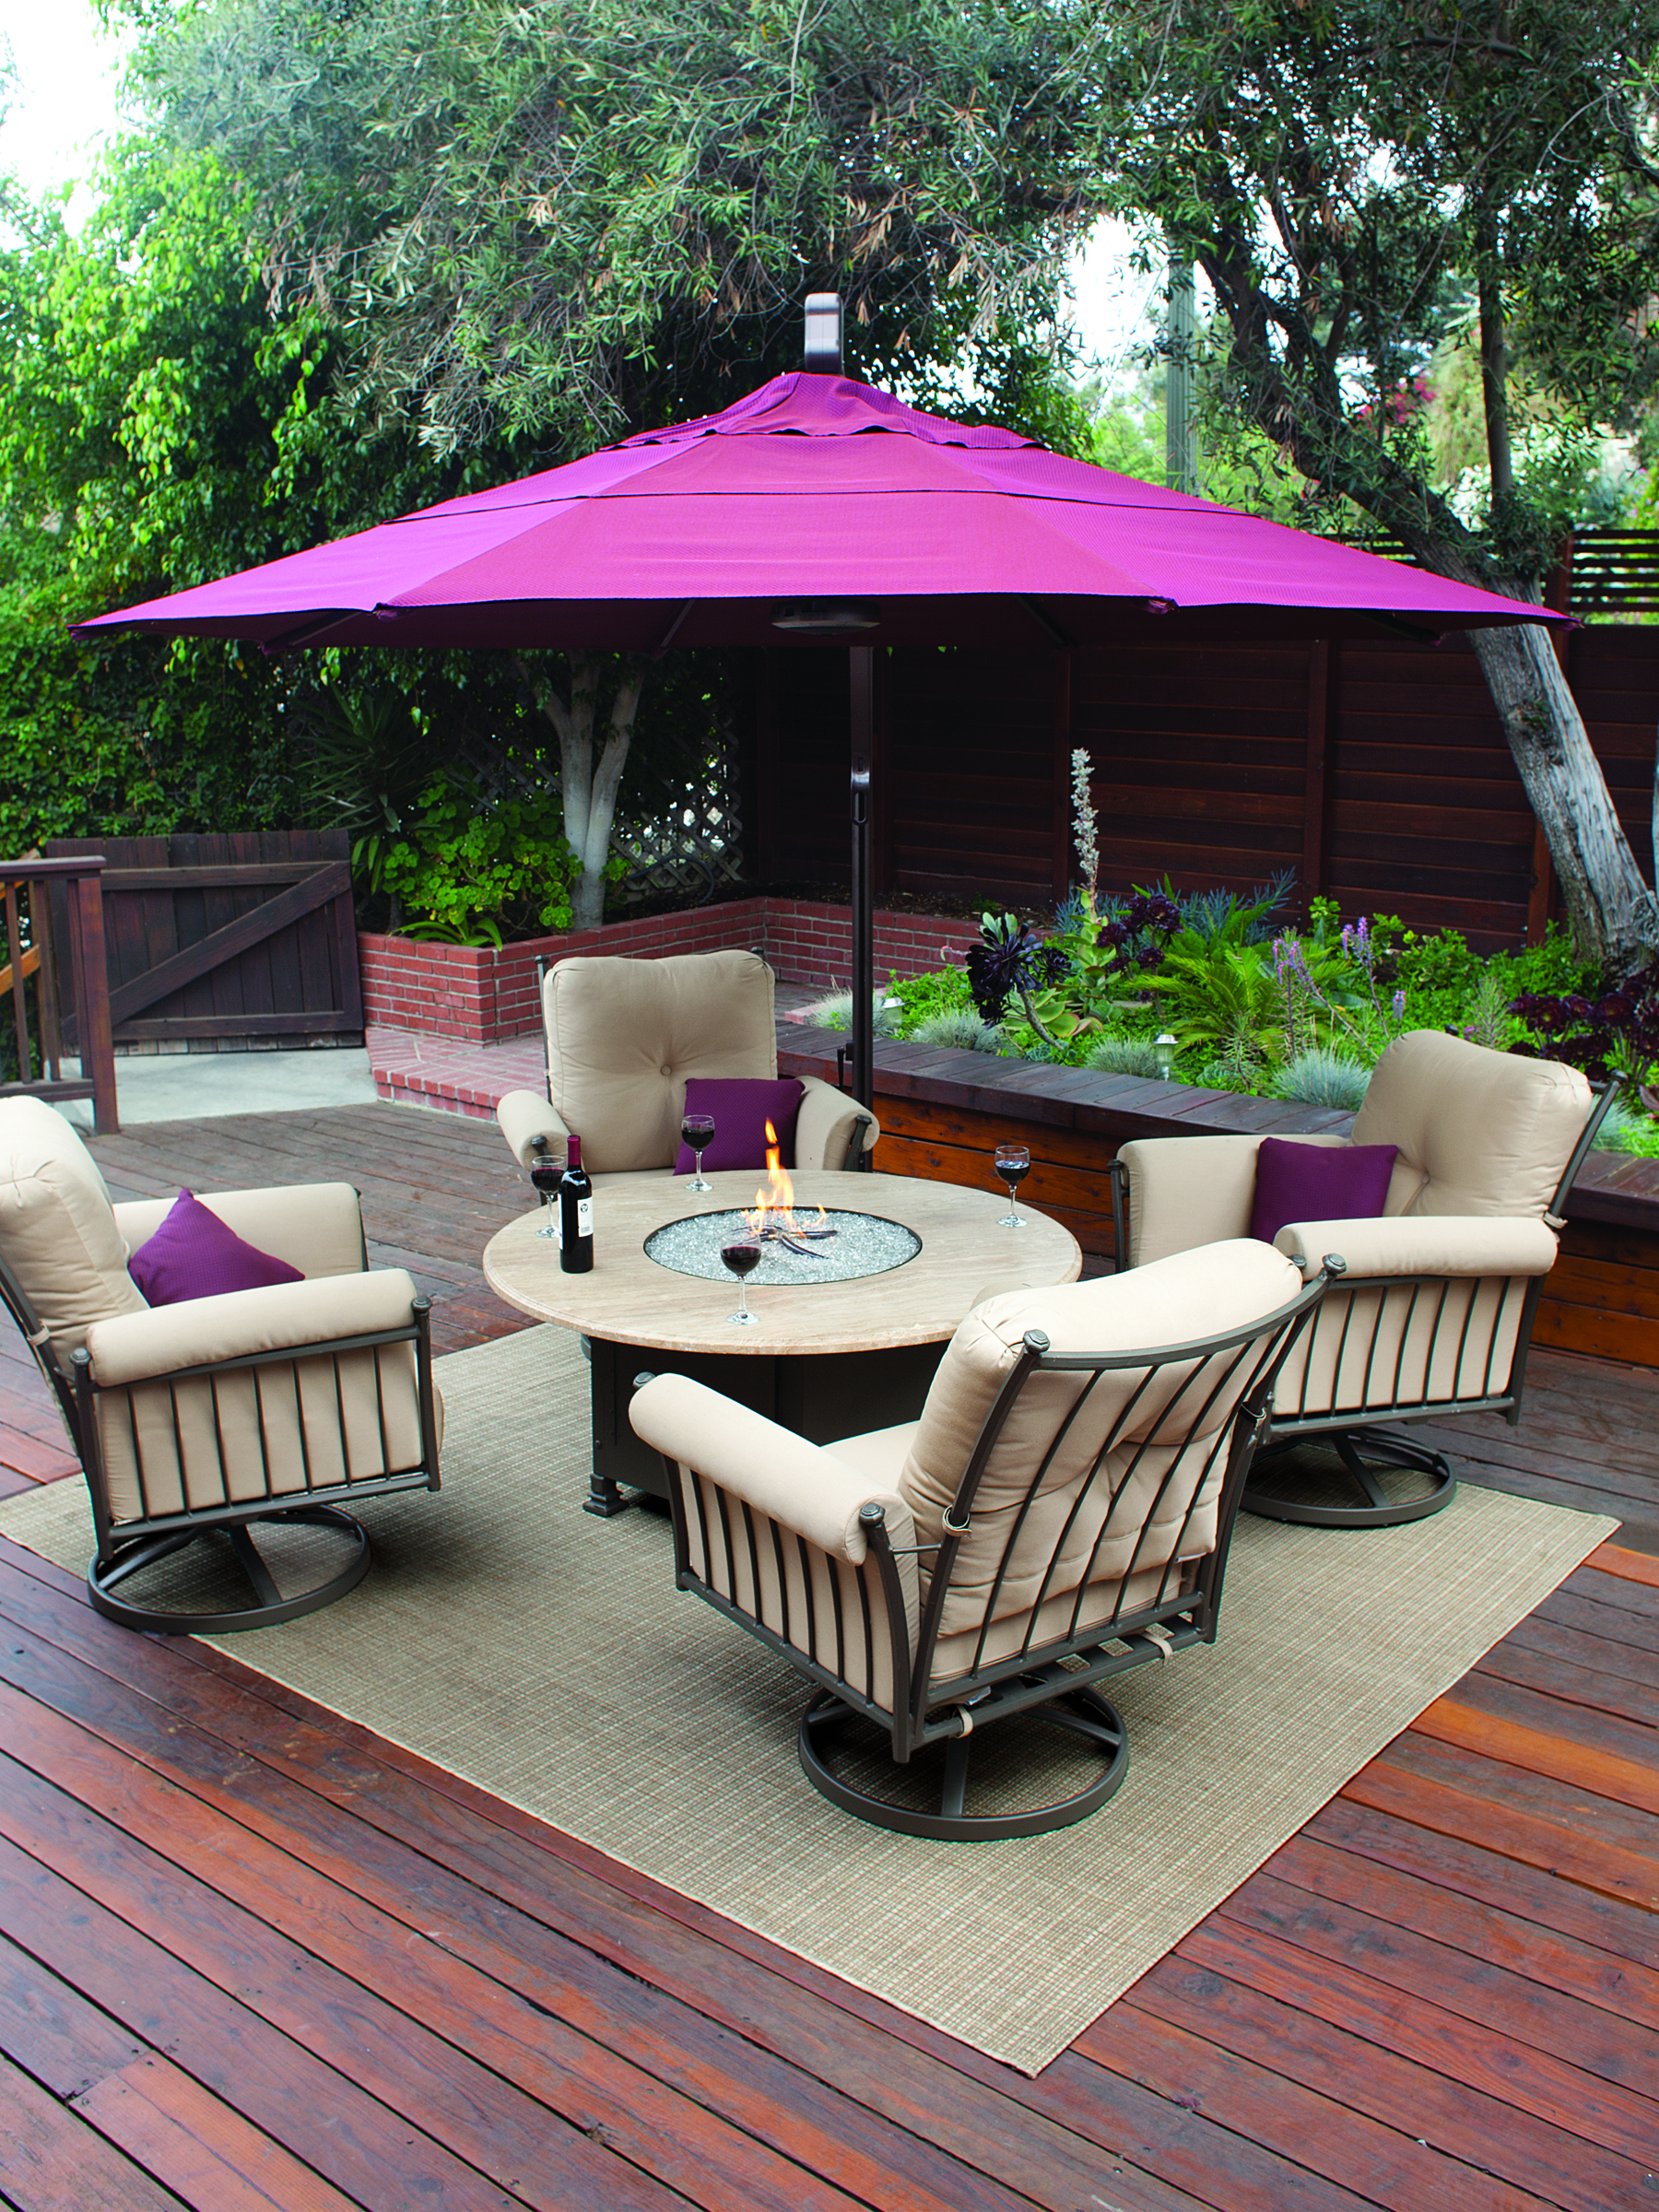 Leather Furniture Experts fer 3 Tips for Choosing the Best Outdoor Sets W